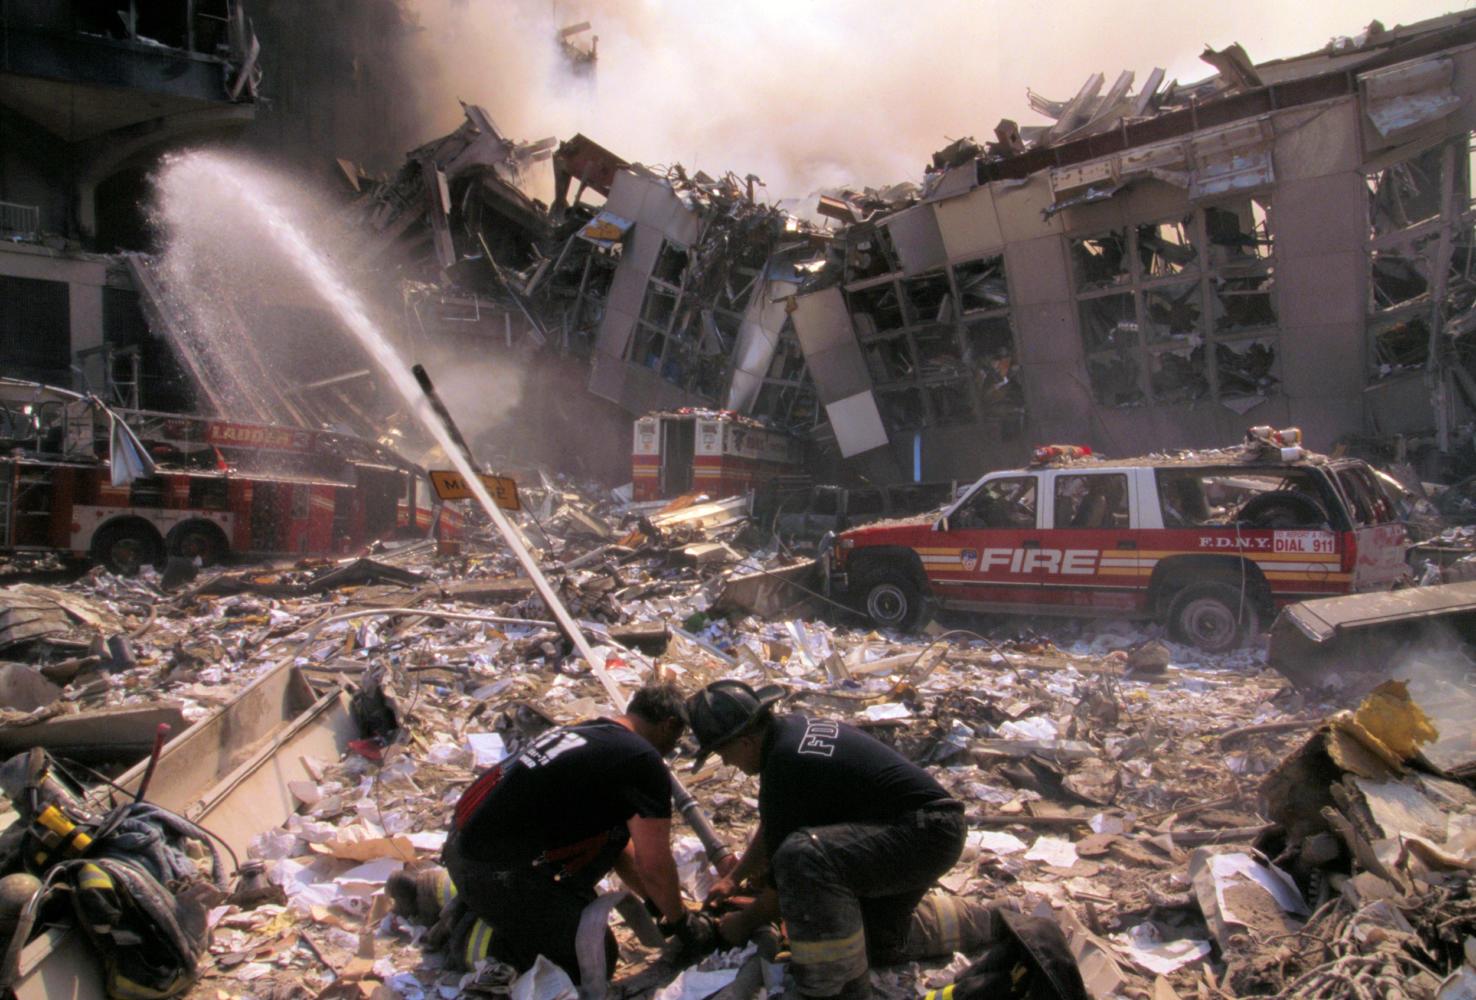 Firefighters douse flames and search for survivors in the rubble of the Twin Towers in the aftermath of the Sept. 11 attacks.